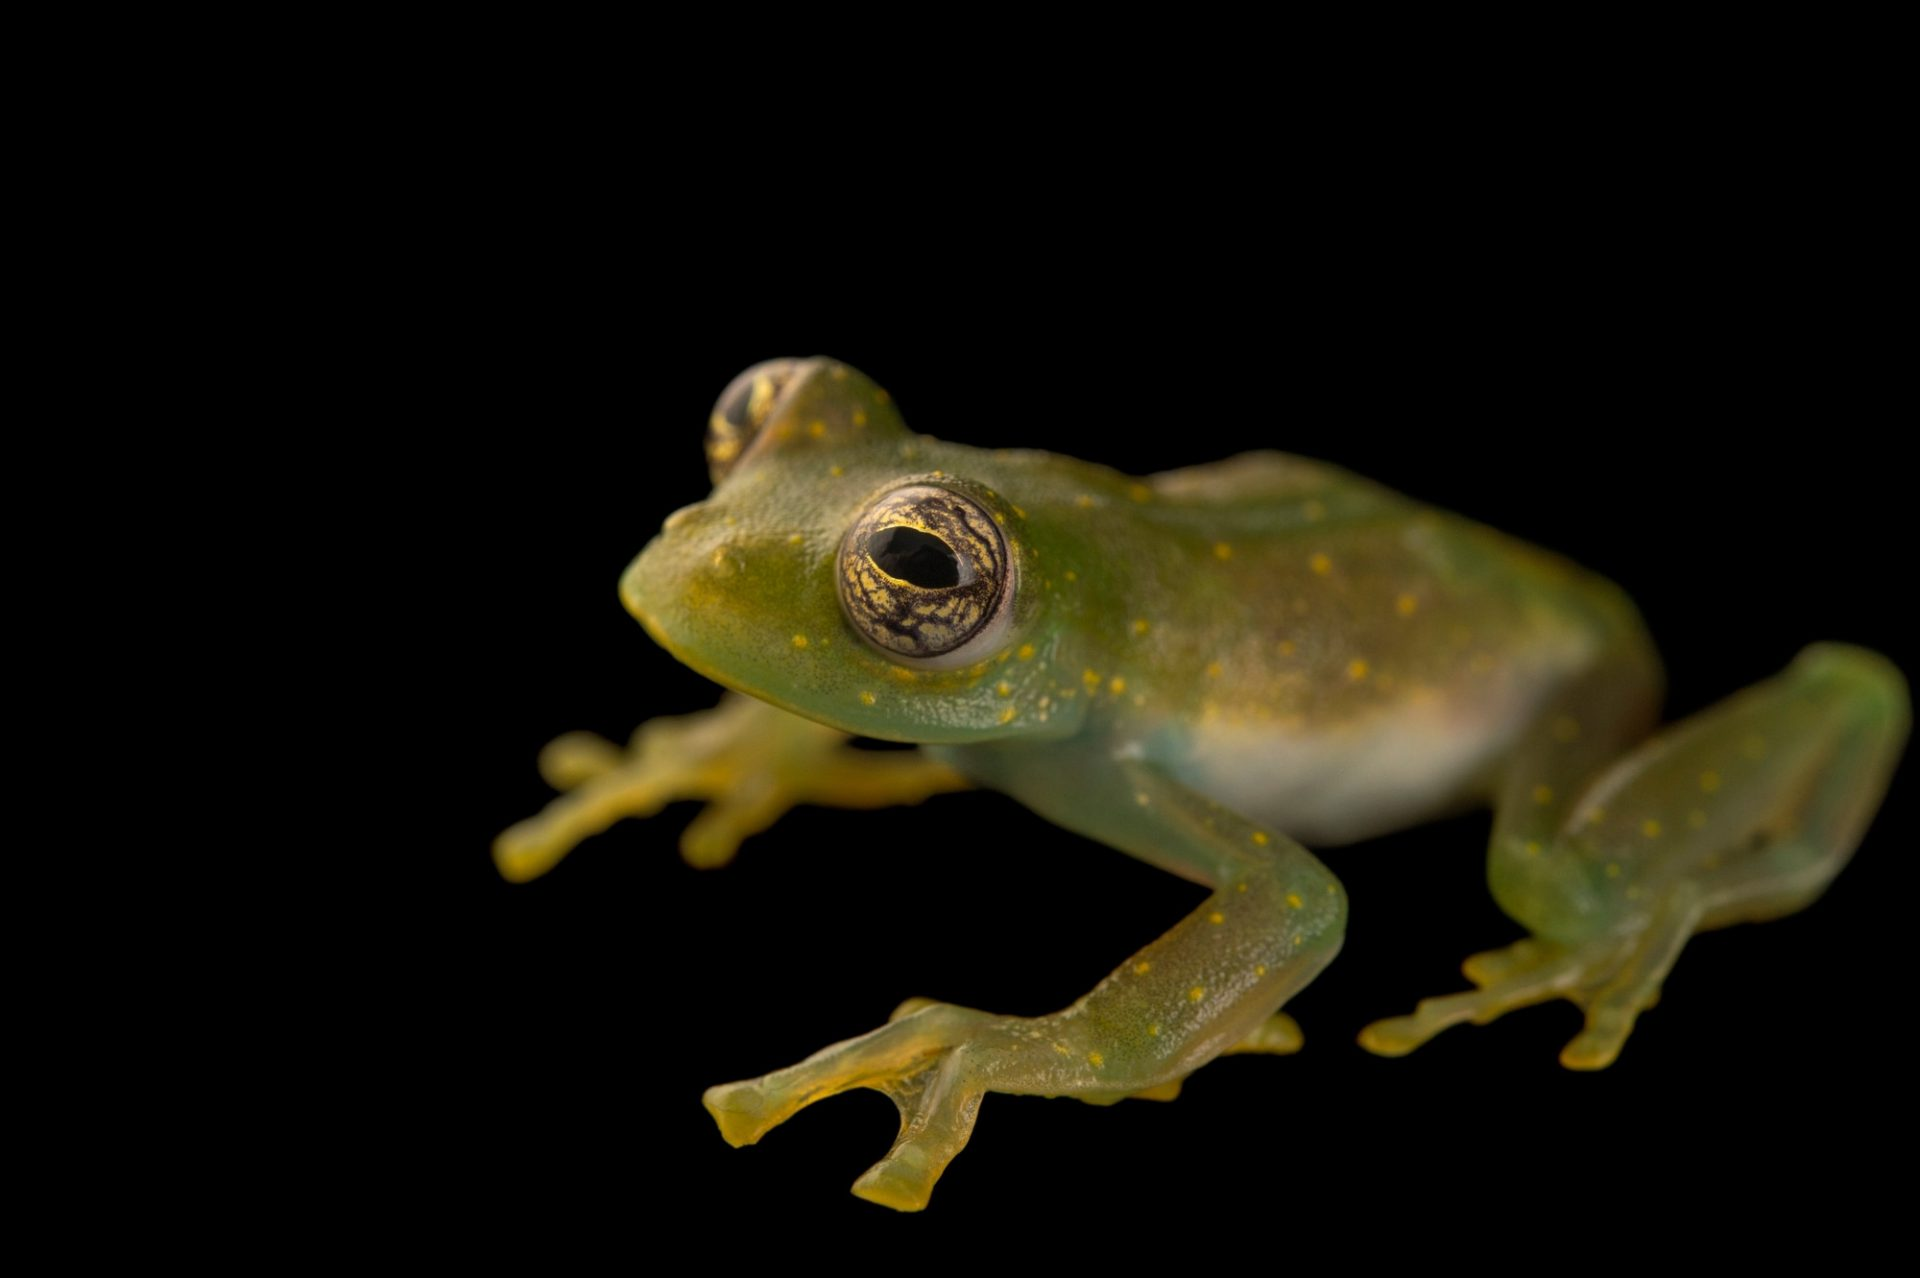 Photo: Yellow-spotted glass frog (Sachatamia albomaculata) at the El Valle Amphibian Conservation Center (EVACC).